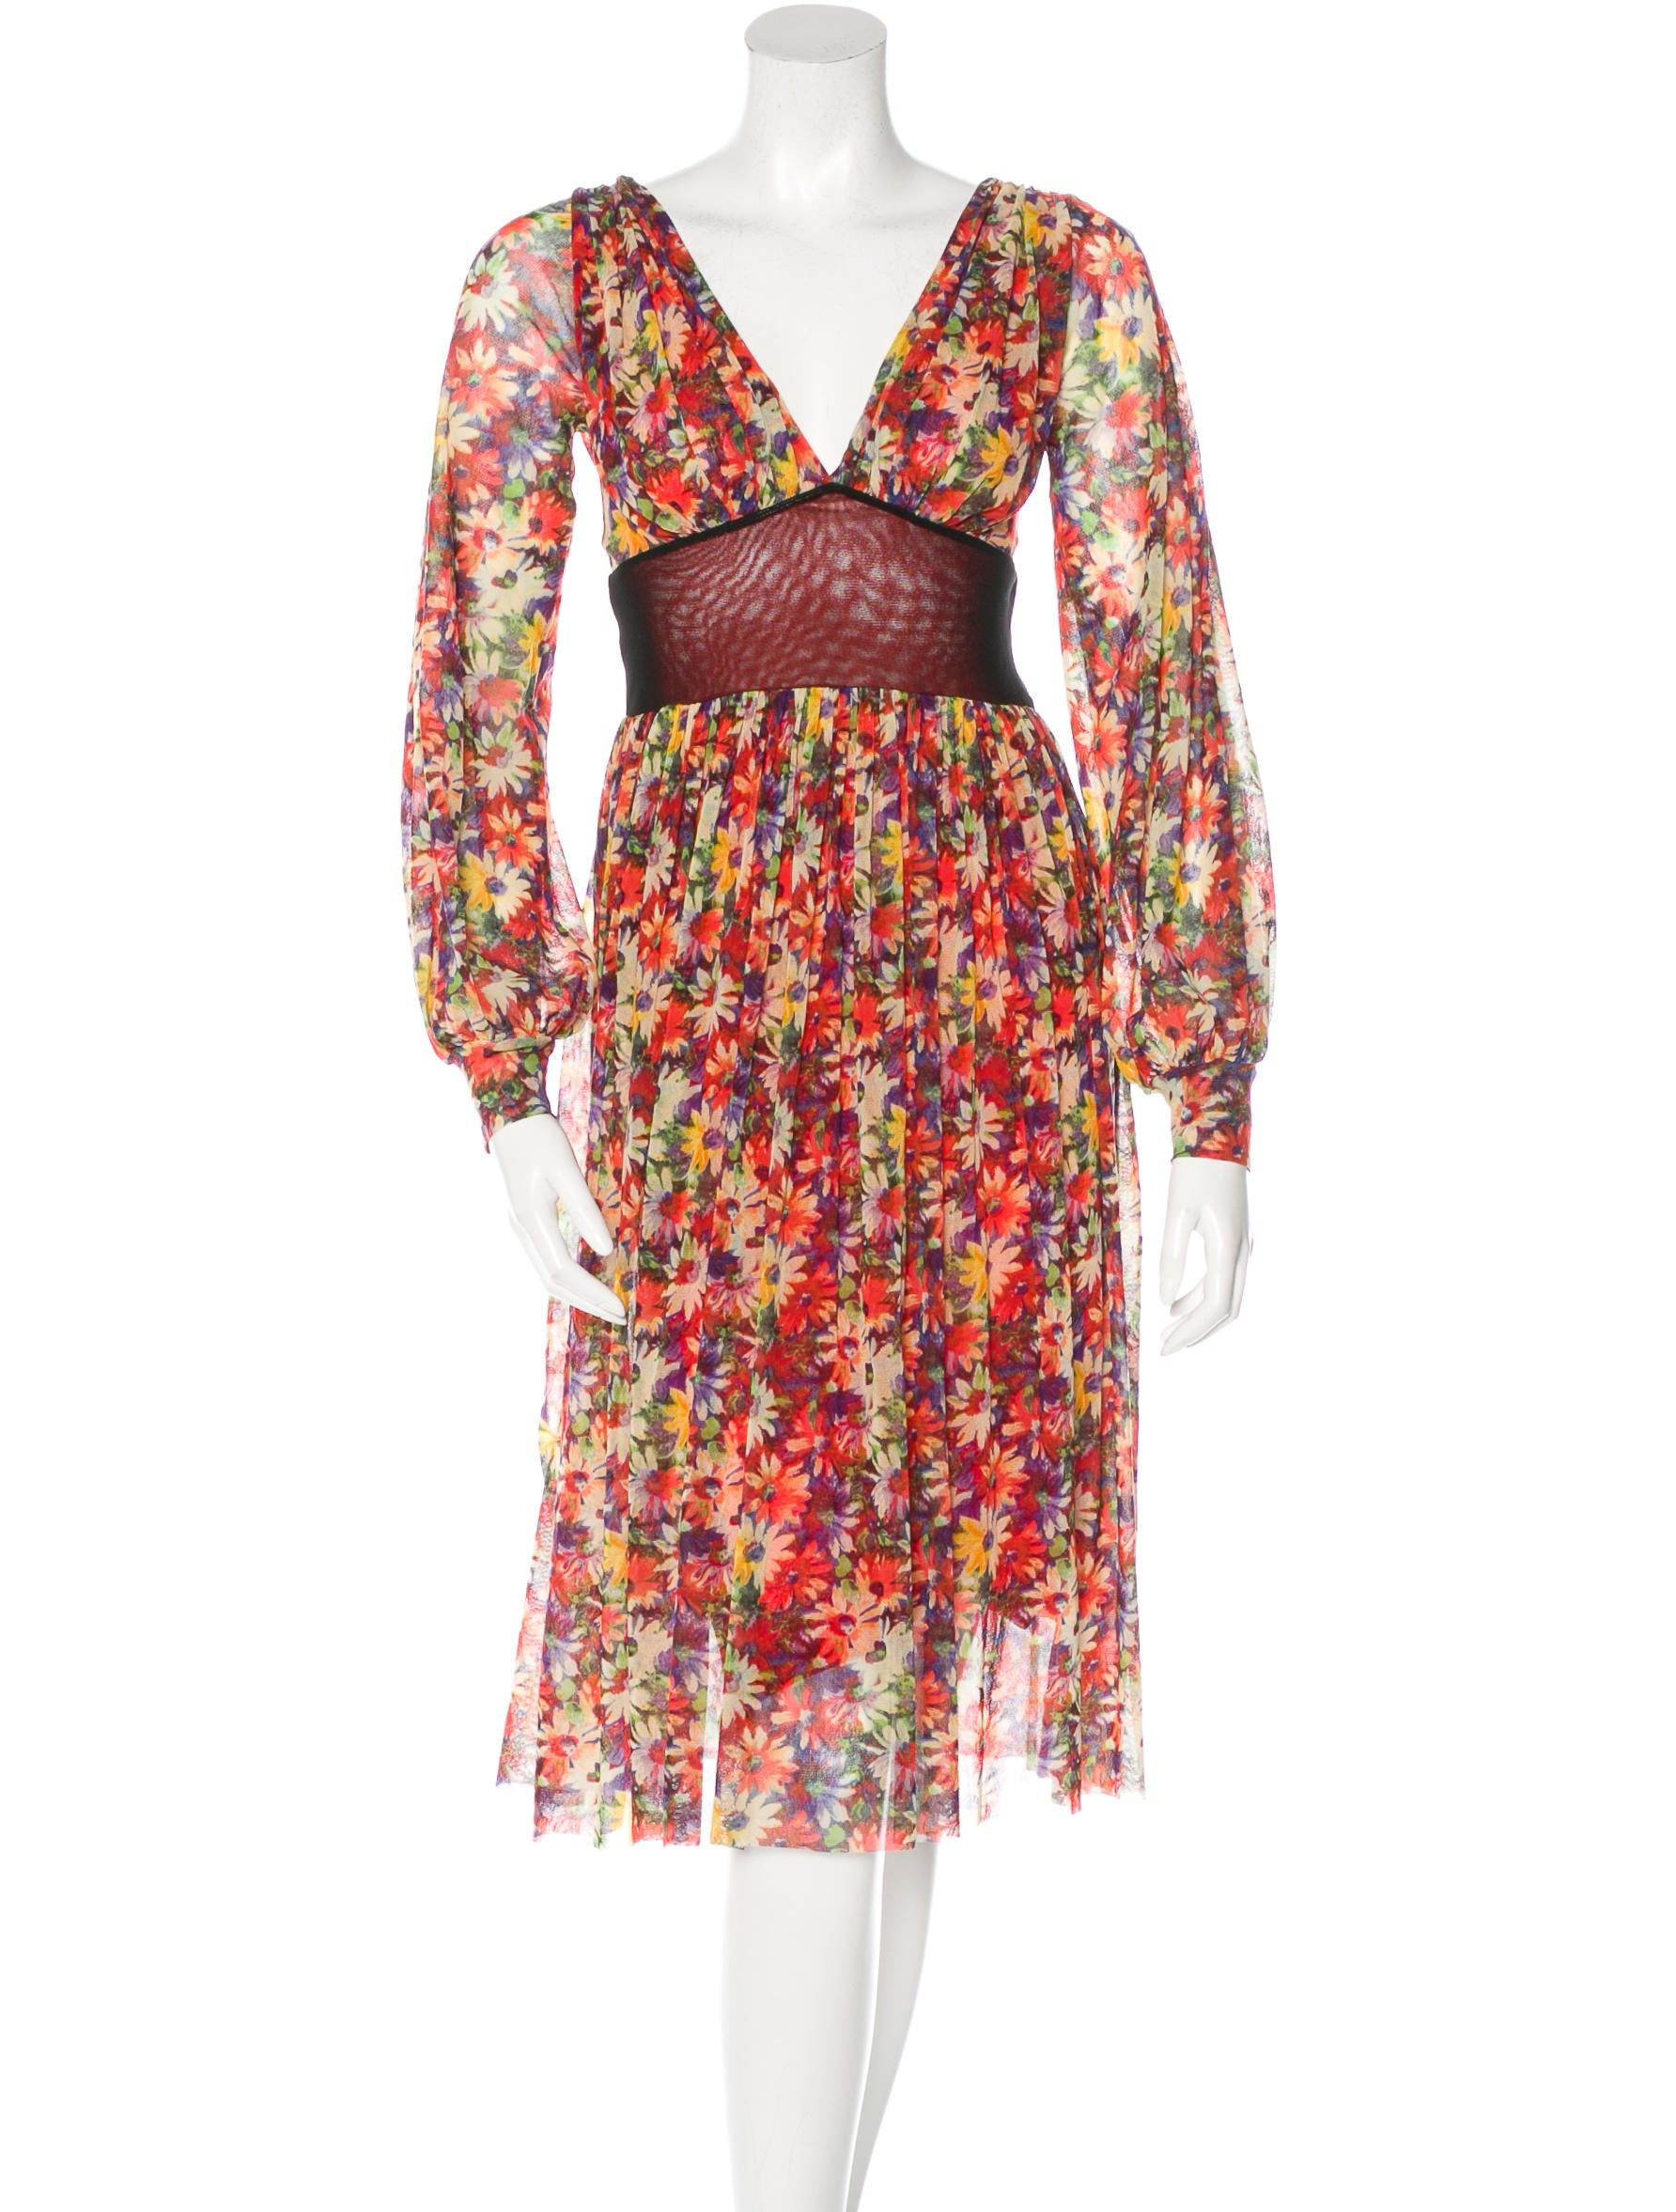 Jean paul gaultier floral print midi dress clothing for Jean paul gaultier clothing